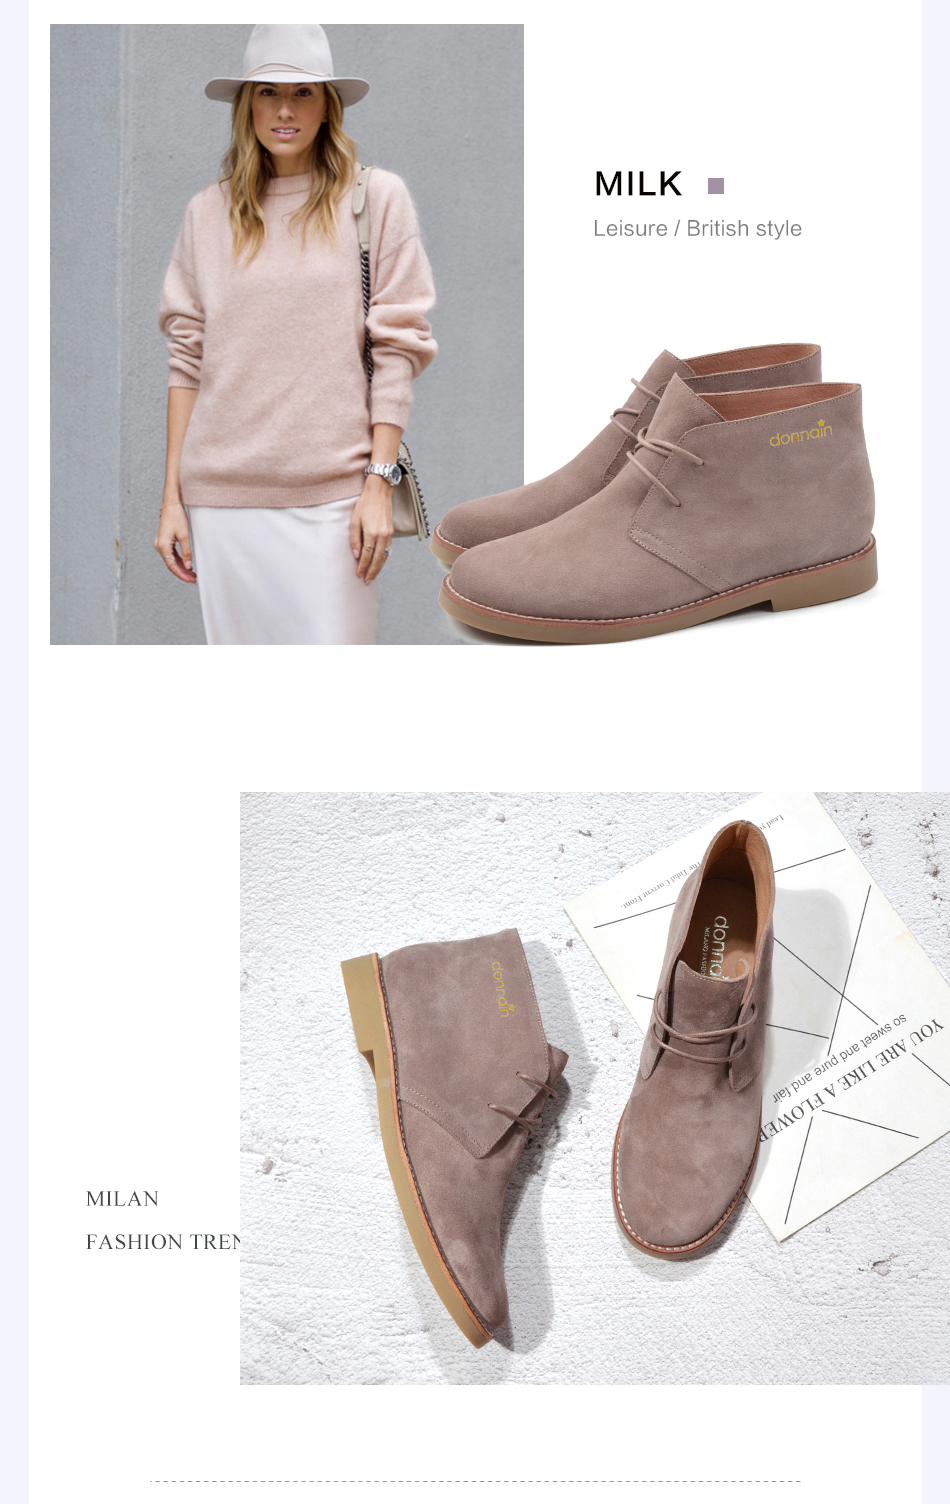 Donna-in Fashion Martin Boots Women Adult Autumn Spring 2019 Ankle Boots Suede Leather Lace-up Casual Low Heel Shoes Women (29)